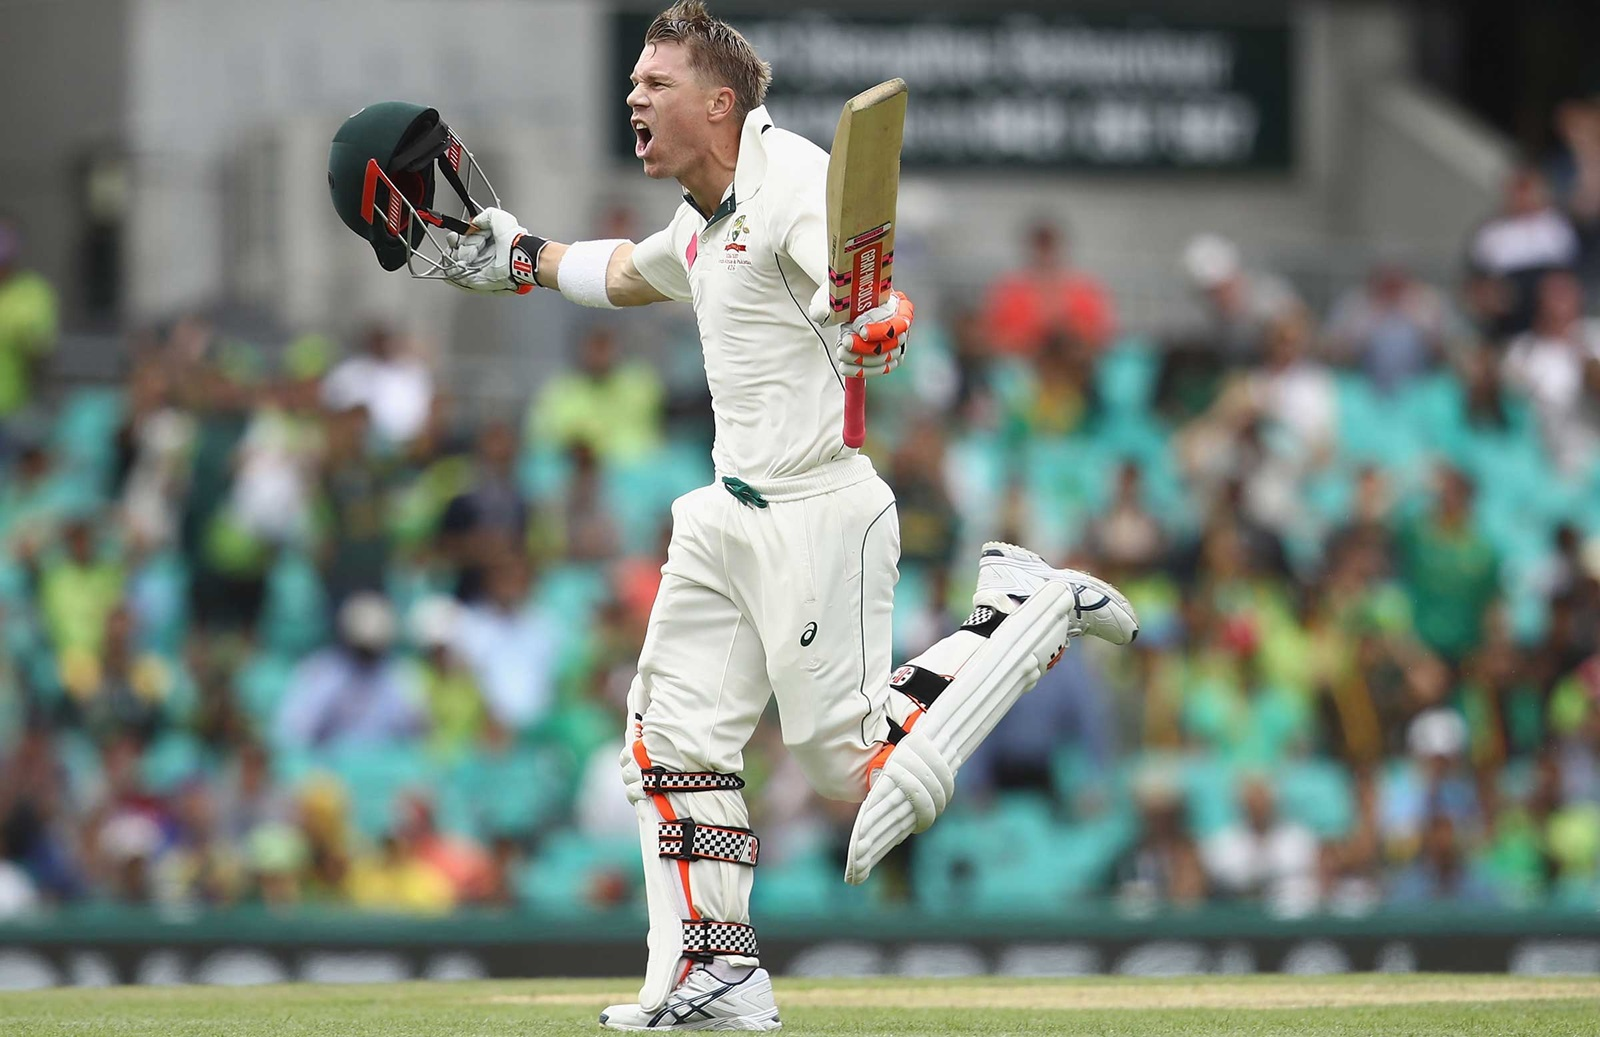 Warner creates history with first-session ton | cricket.com.au